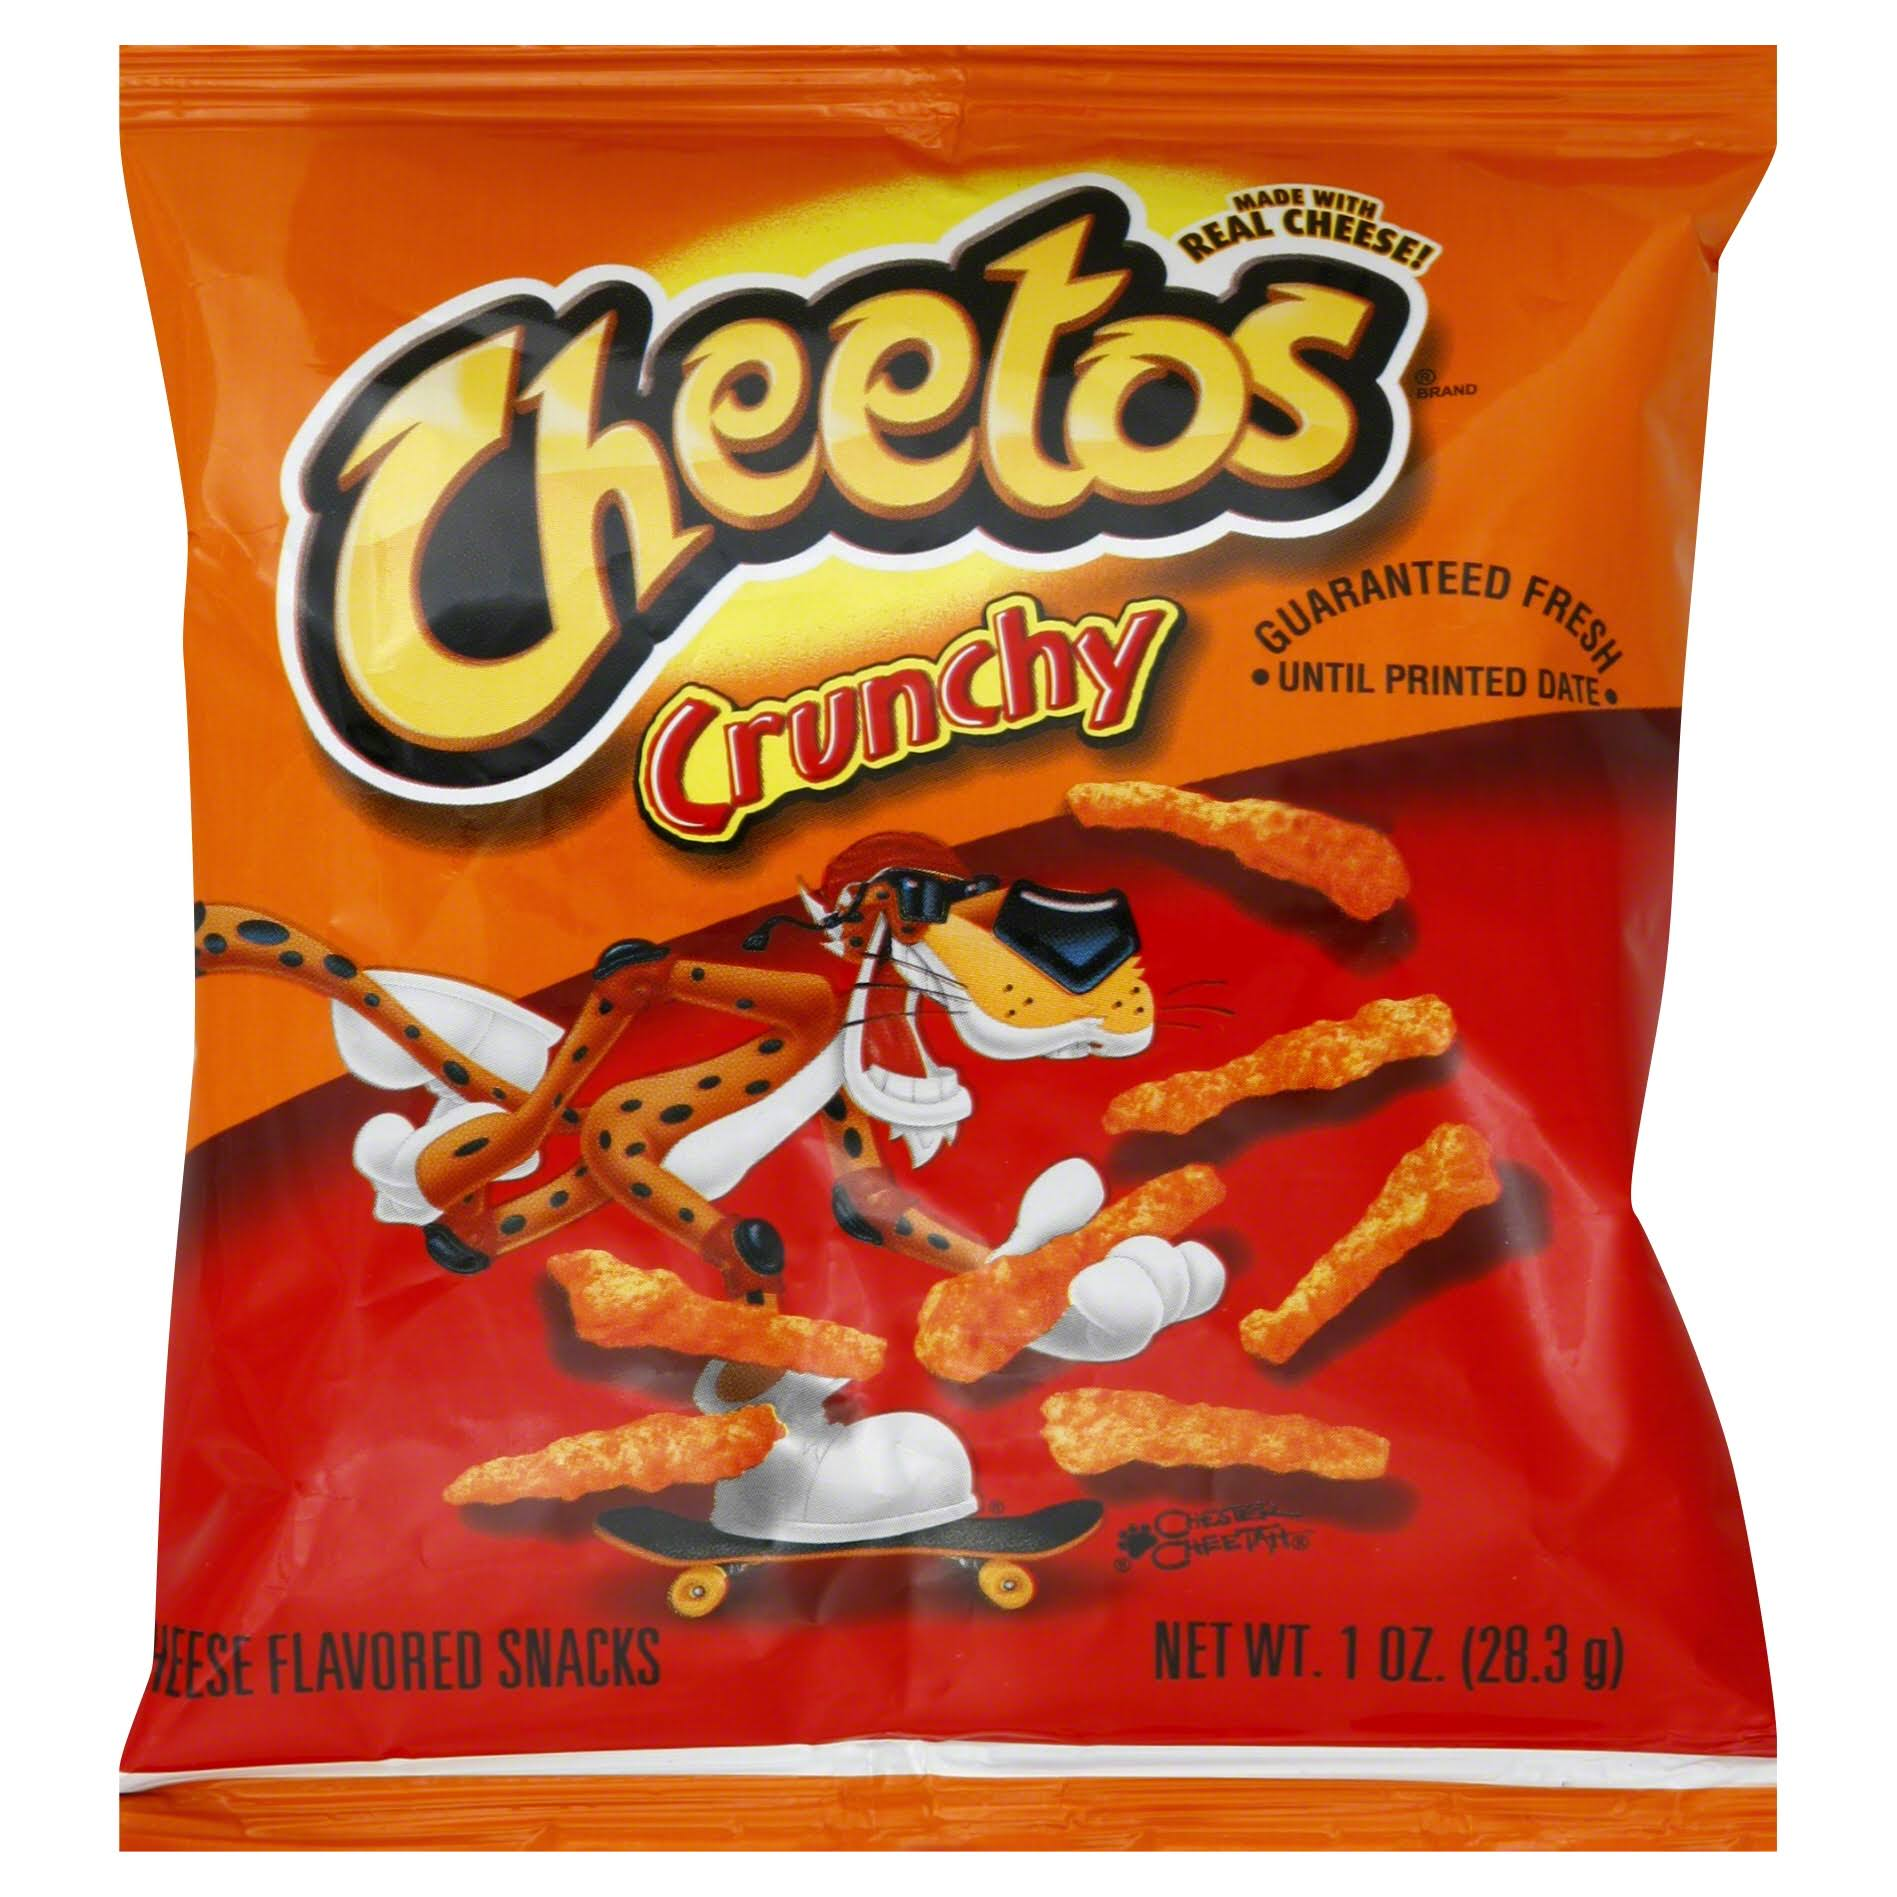 Cheetos Crunchy Snack - Cheese